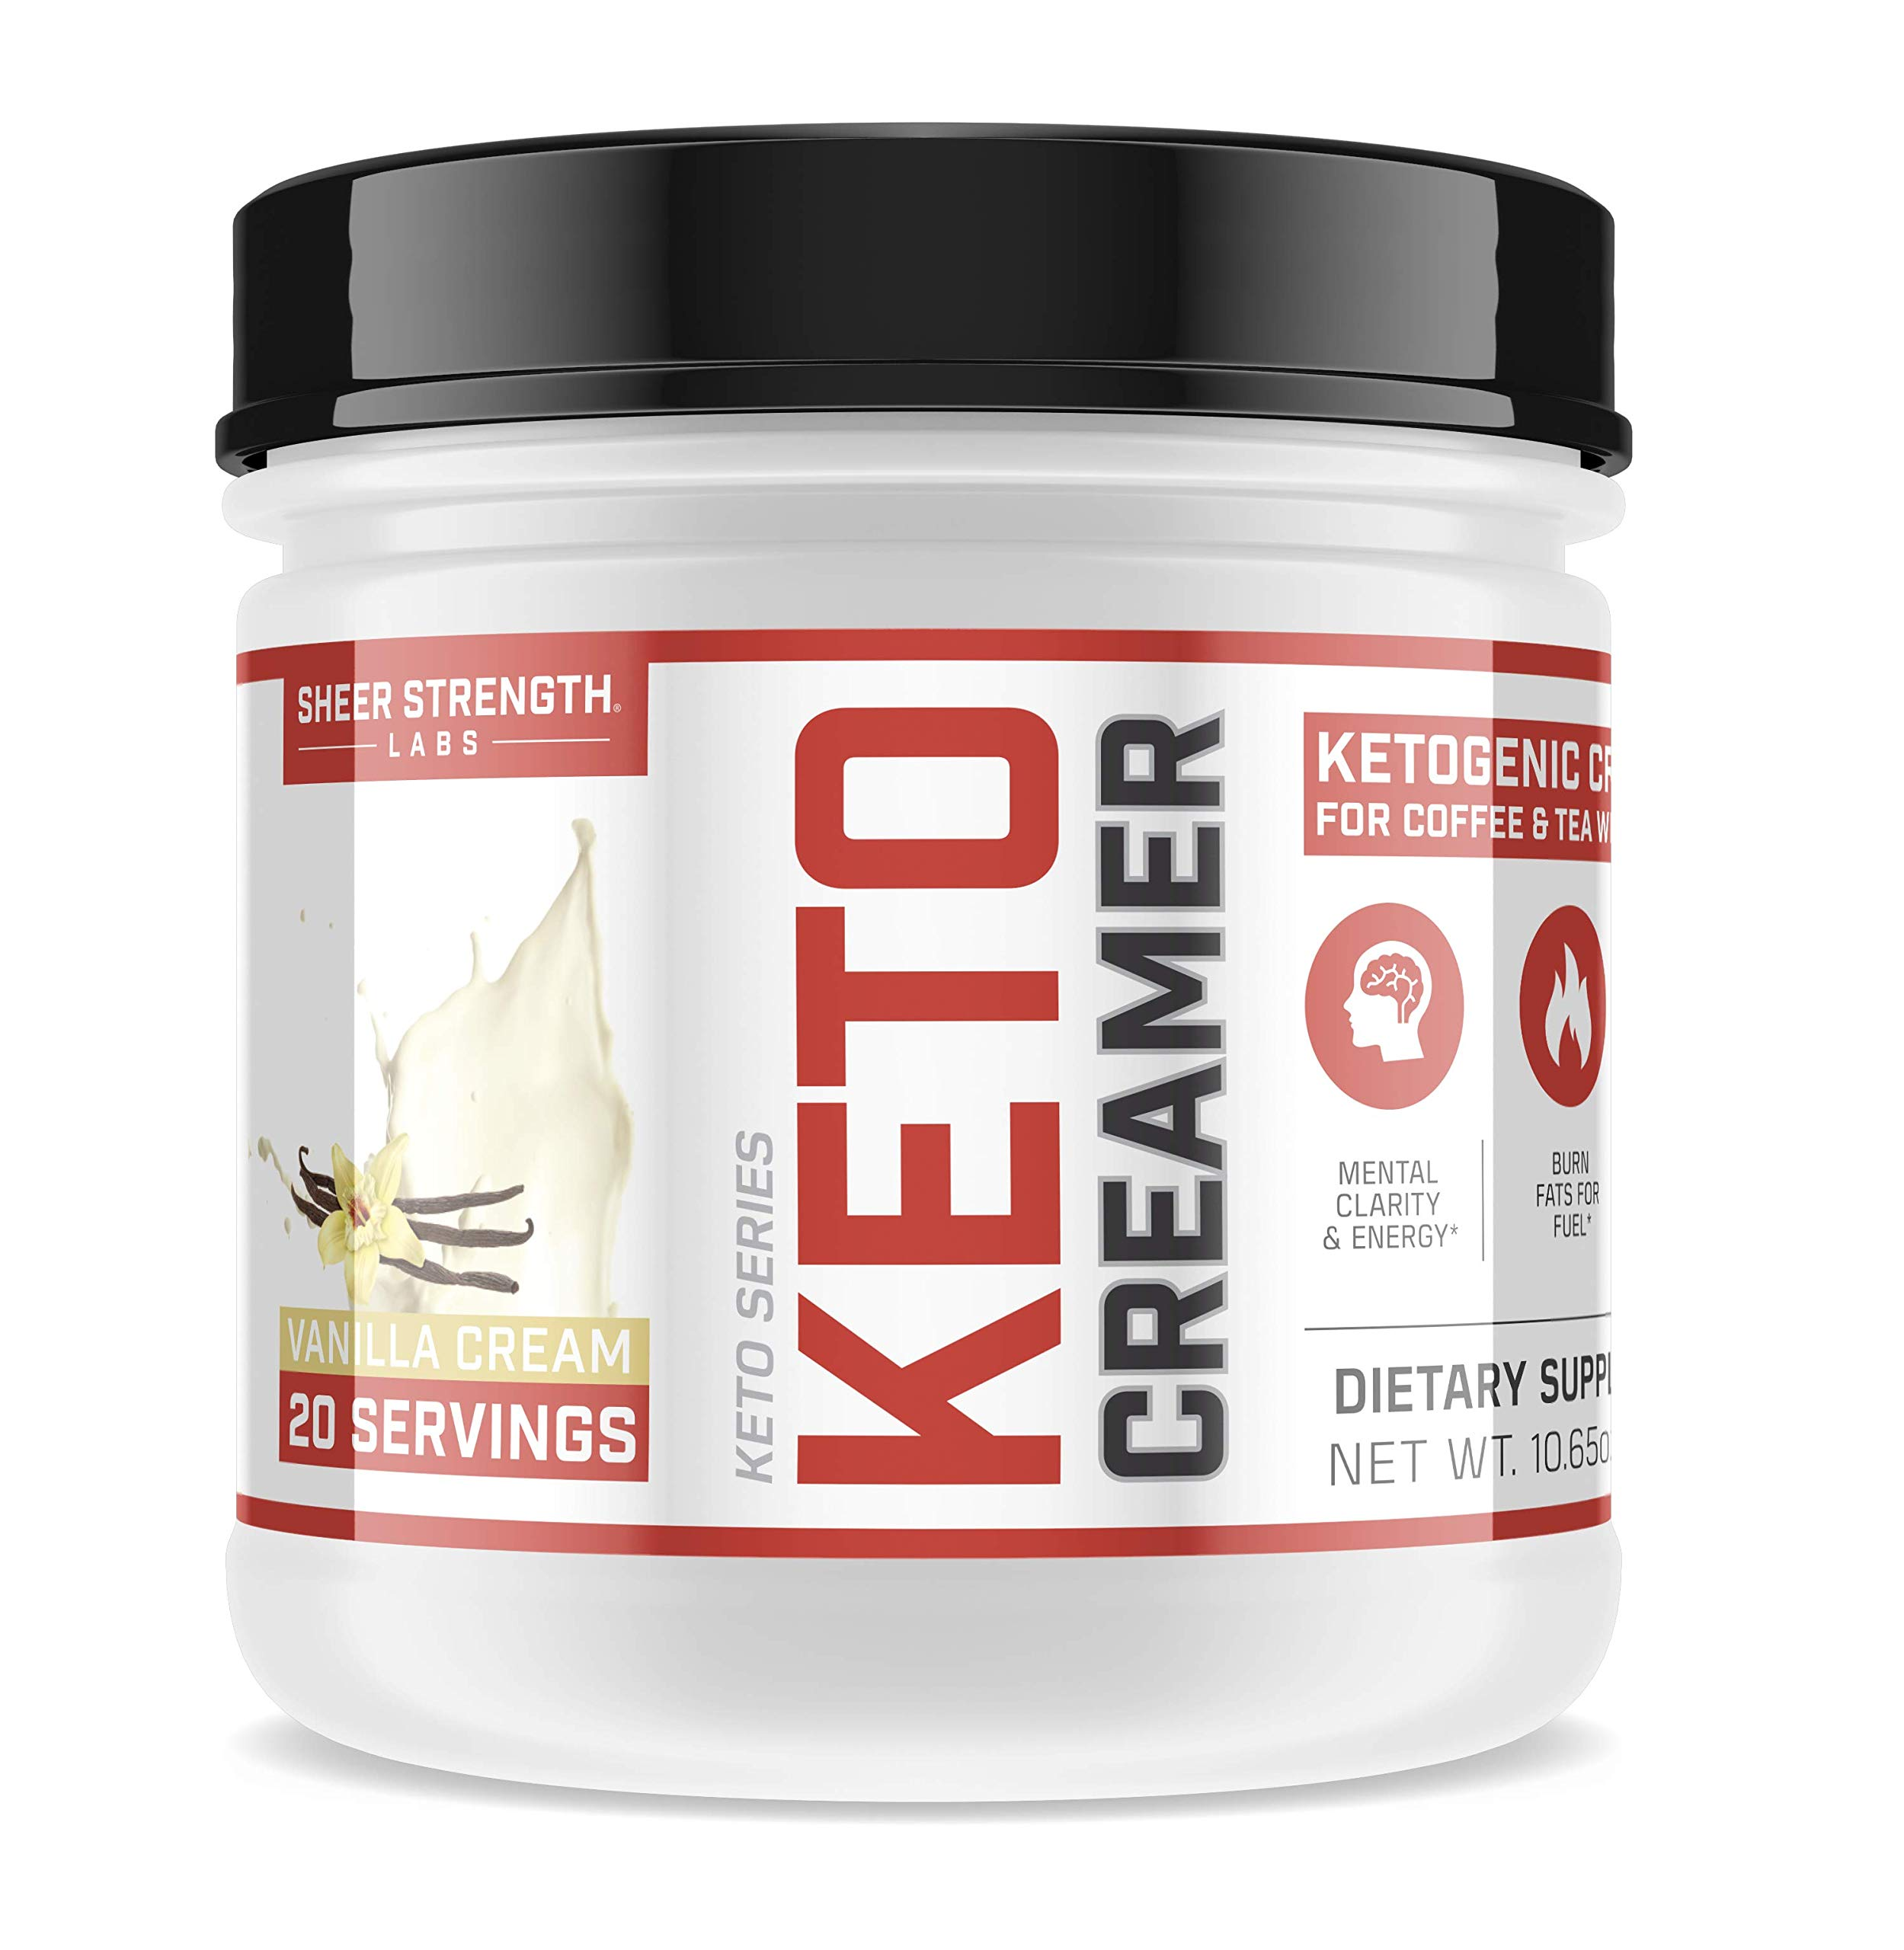 Keto Creamer for Men and Women on a Low-Carb Diet - MCT Oil Powder and More | Ketogenic-Friendly Fat and Fiber Source Supports Weight Loss and Gut Health | Vanilla Cream 302g, Sheer Strength Labs by Sheer Strength